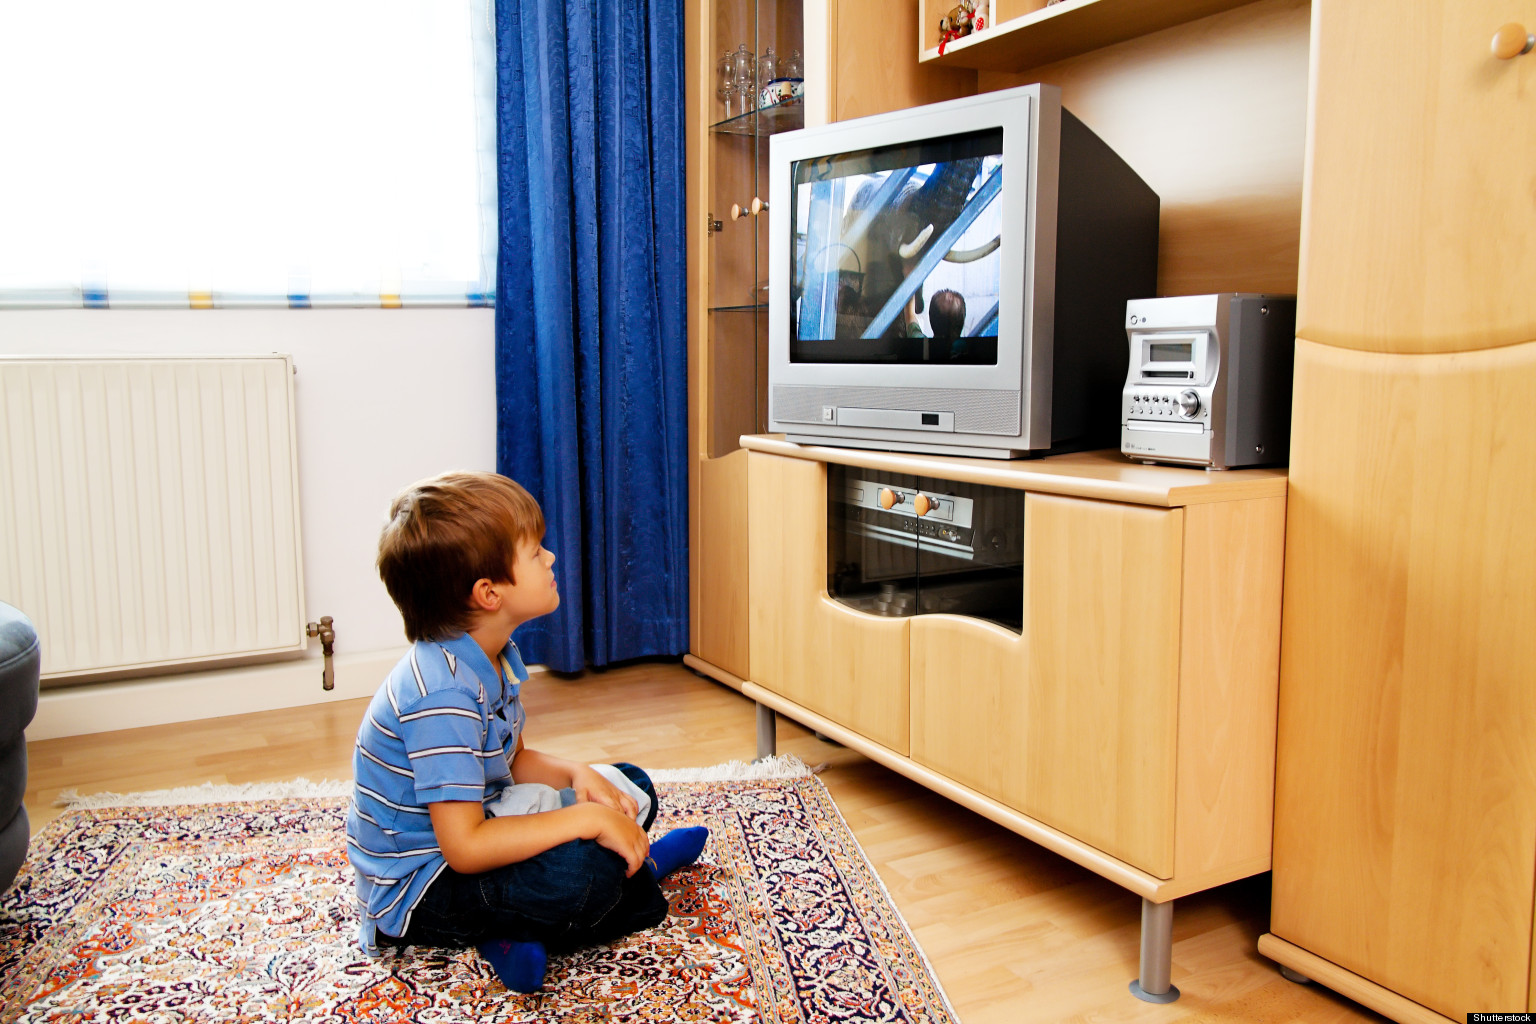 Wondrous Scary Shows On Tv Not That Bad For Kids Gazette Review Download Free Architecture Designs Scobabritishbridgeorg